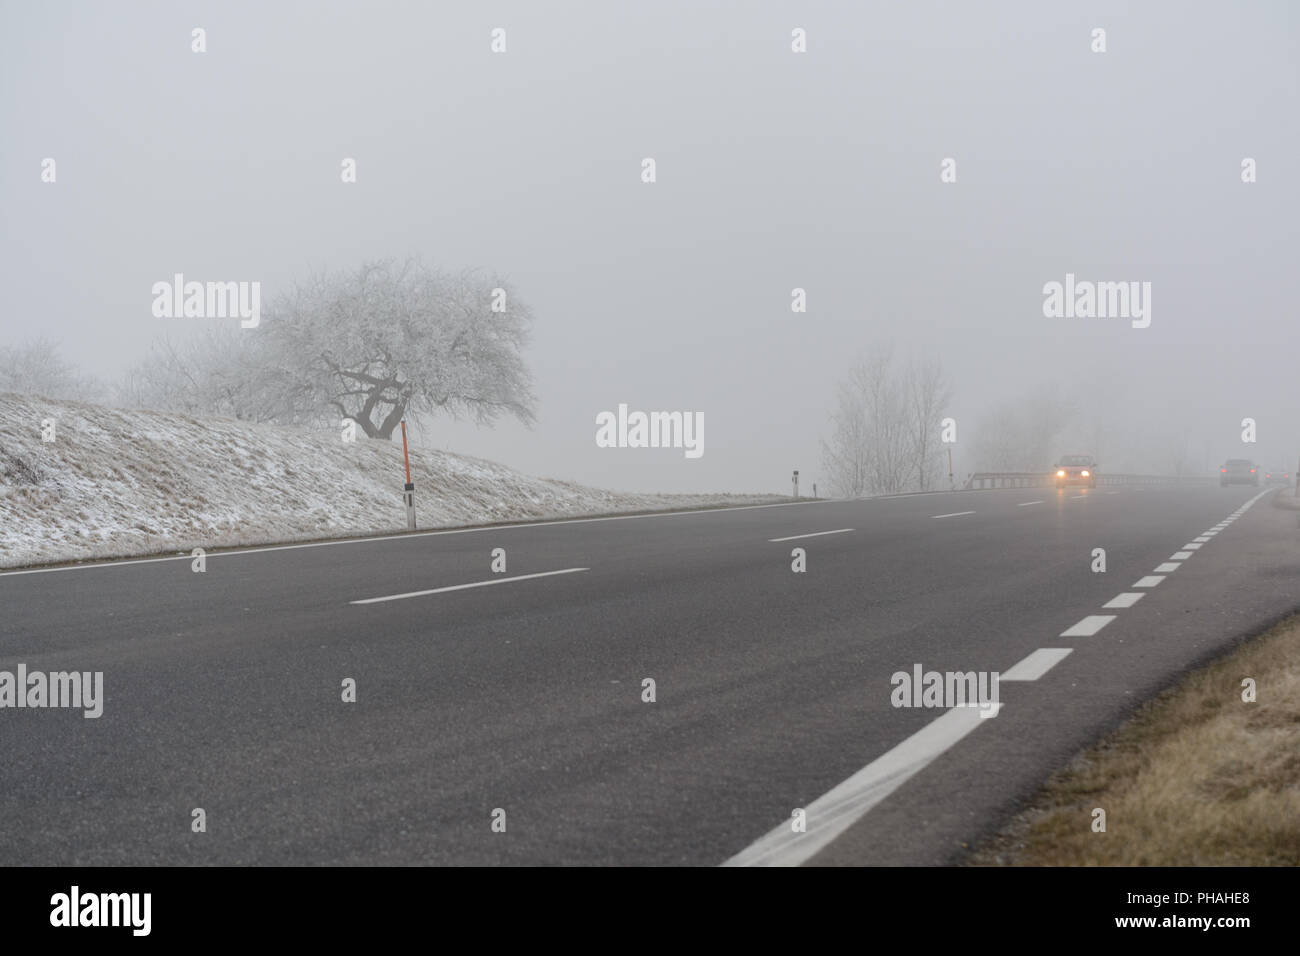 Road traffic in fog and slippery road - Stock Image